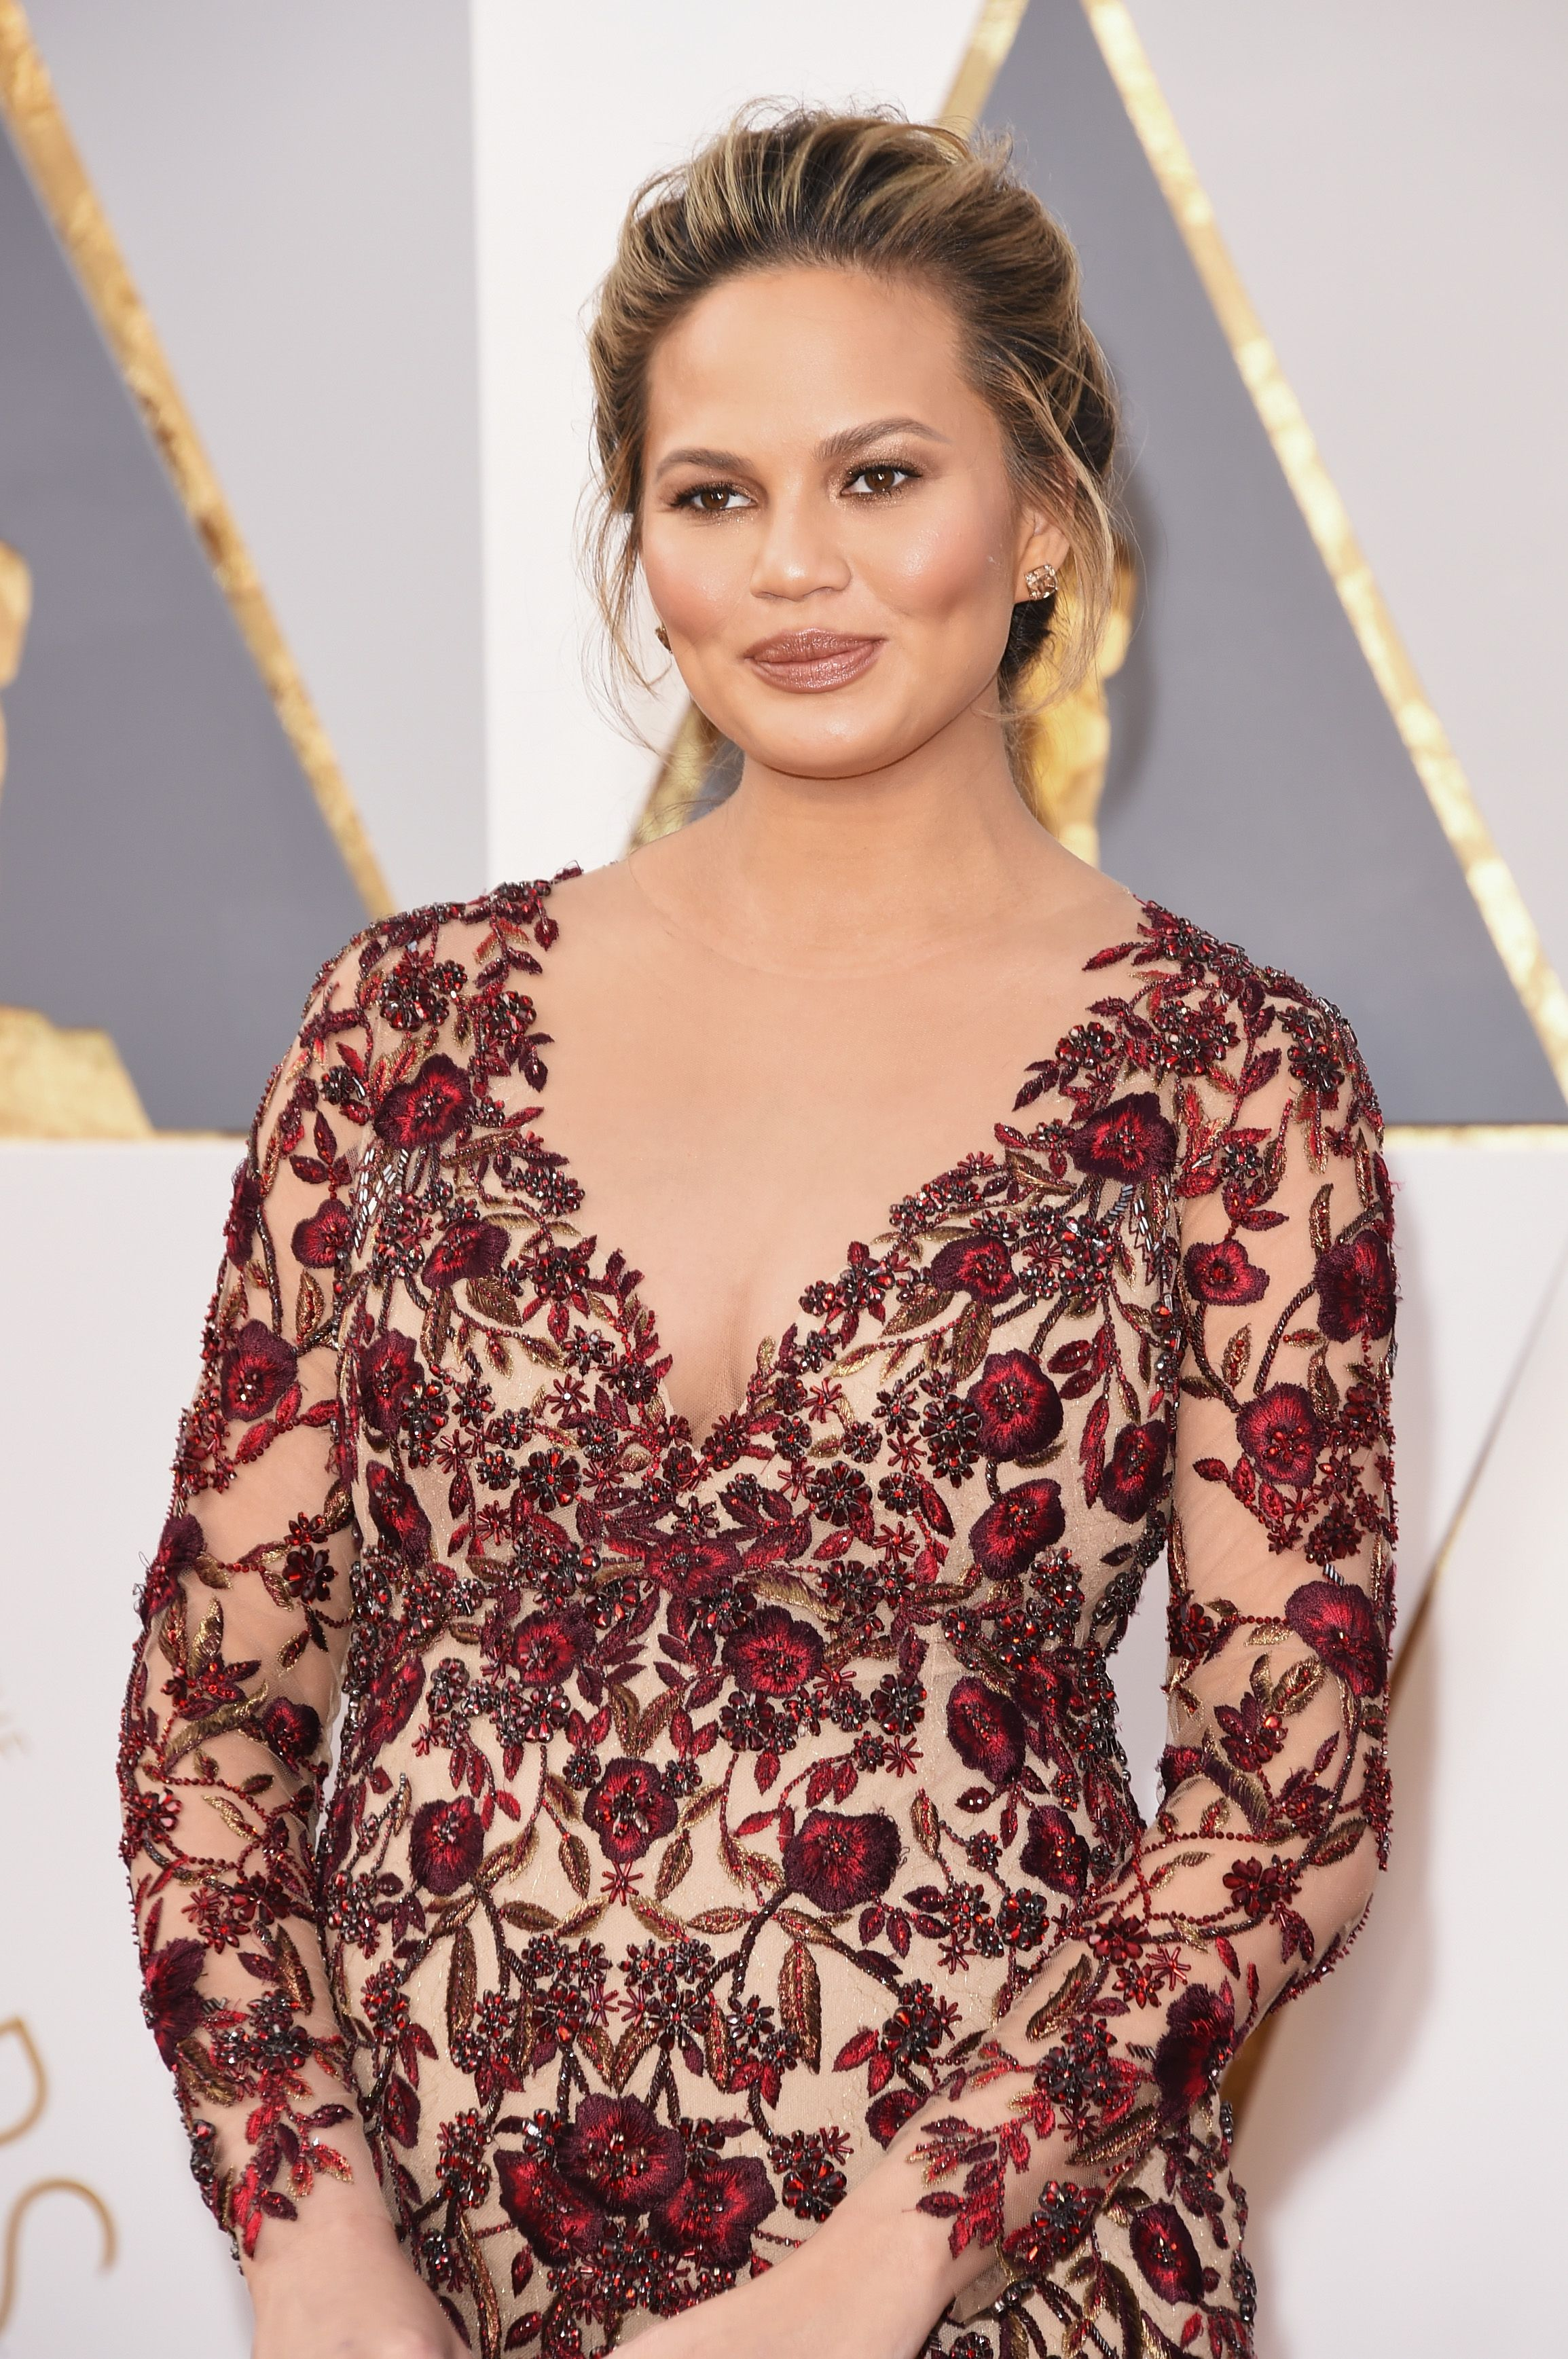 Chrissy Teigen at the 88th Annual Academy Awards at Hollywood & Highland Center on February 28, 2016 | Photo: Getty Images